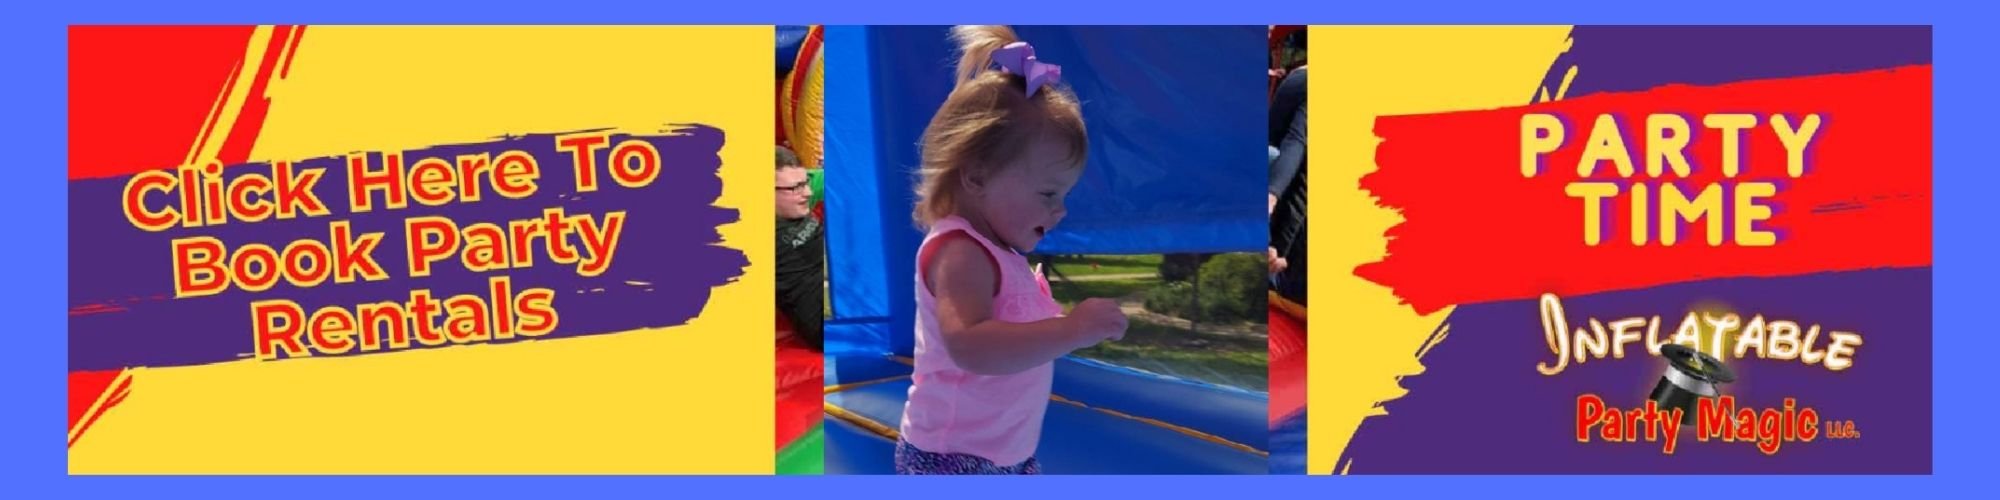 Kennedale Bounce House and Water Slide Rentals Kennedale